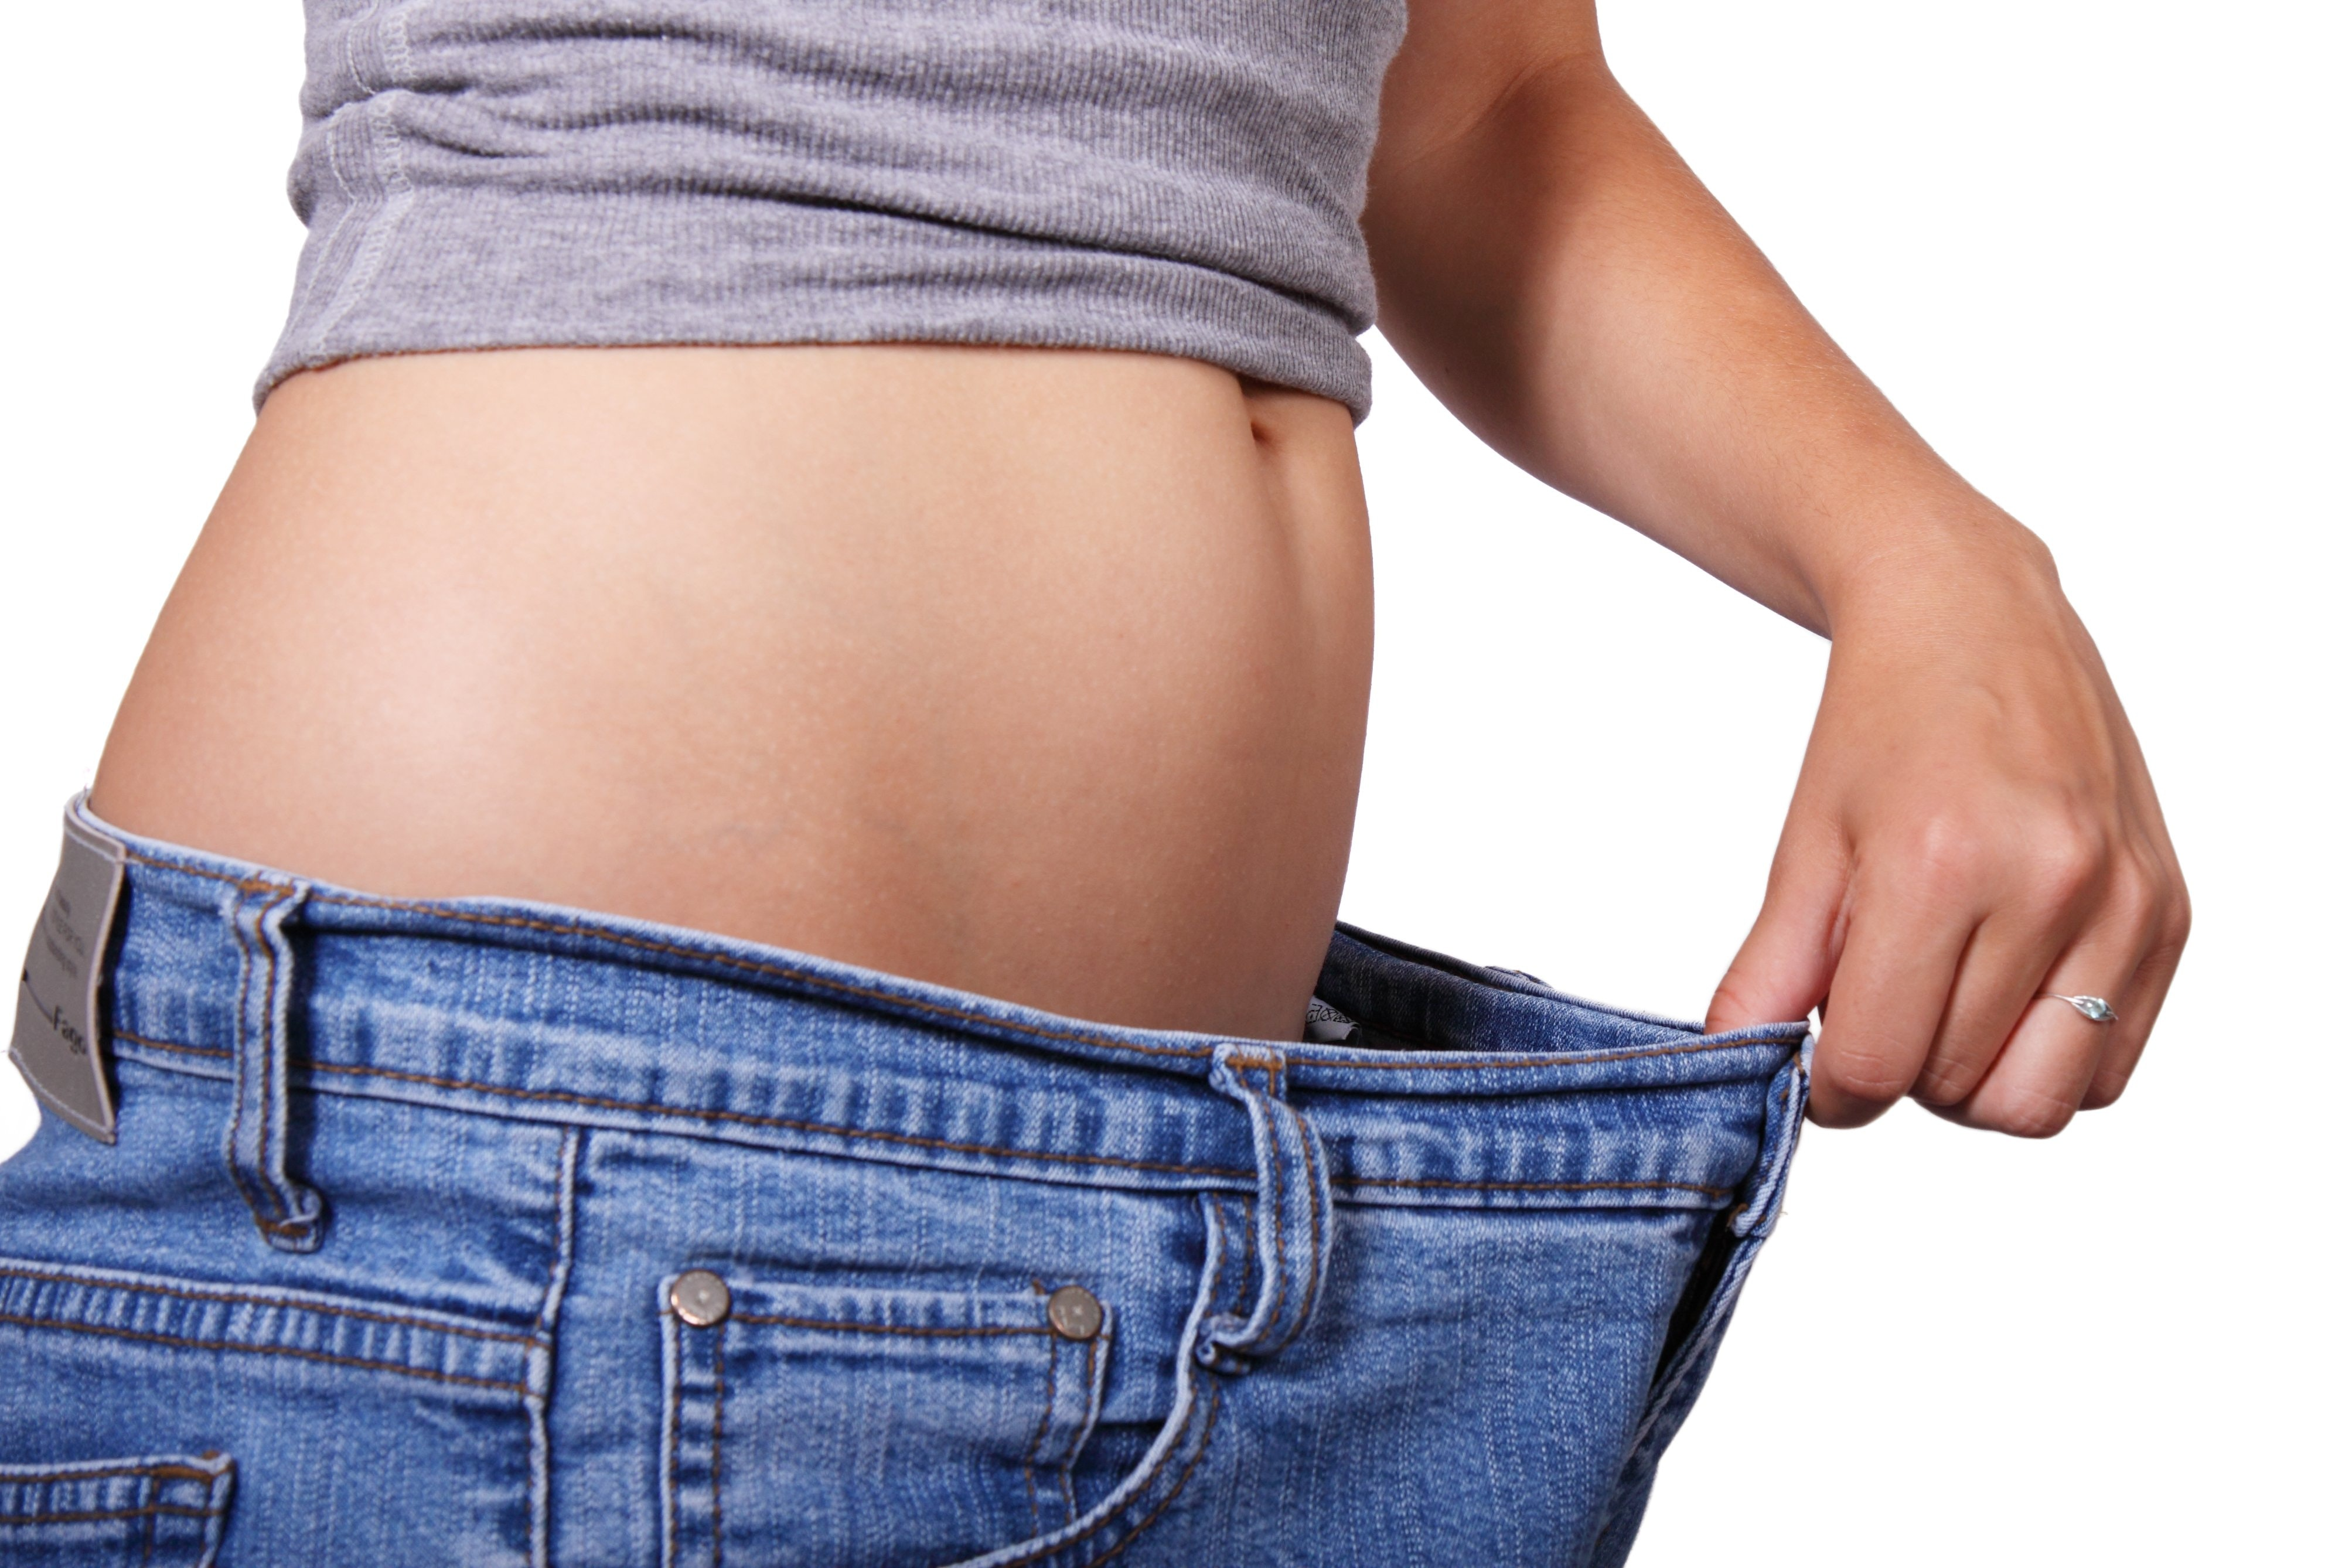 5 Things to Know About Bariatric Surgery